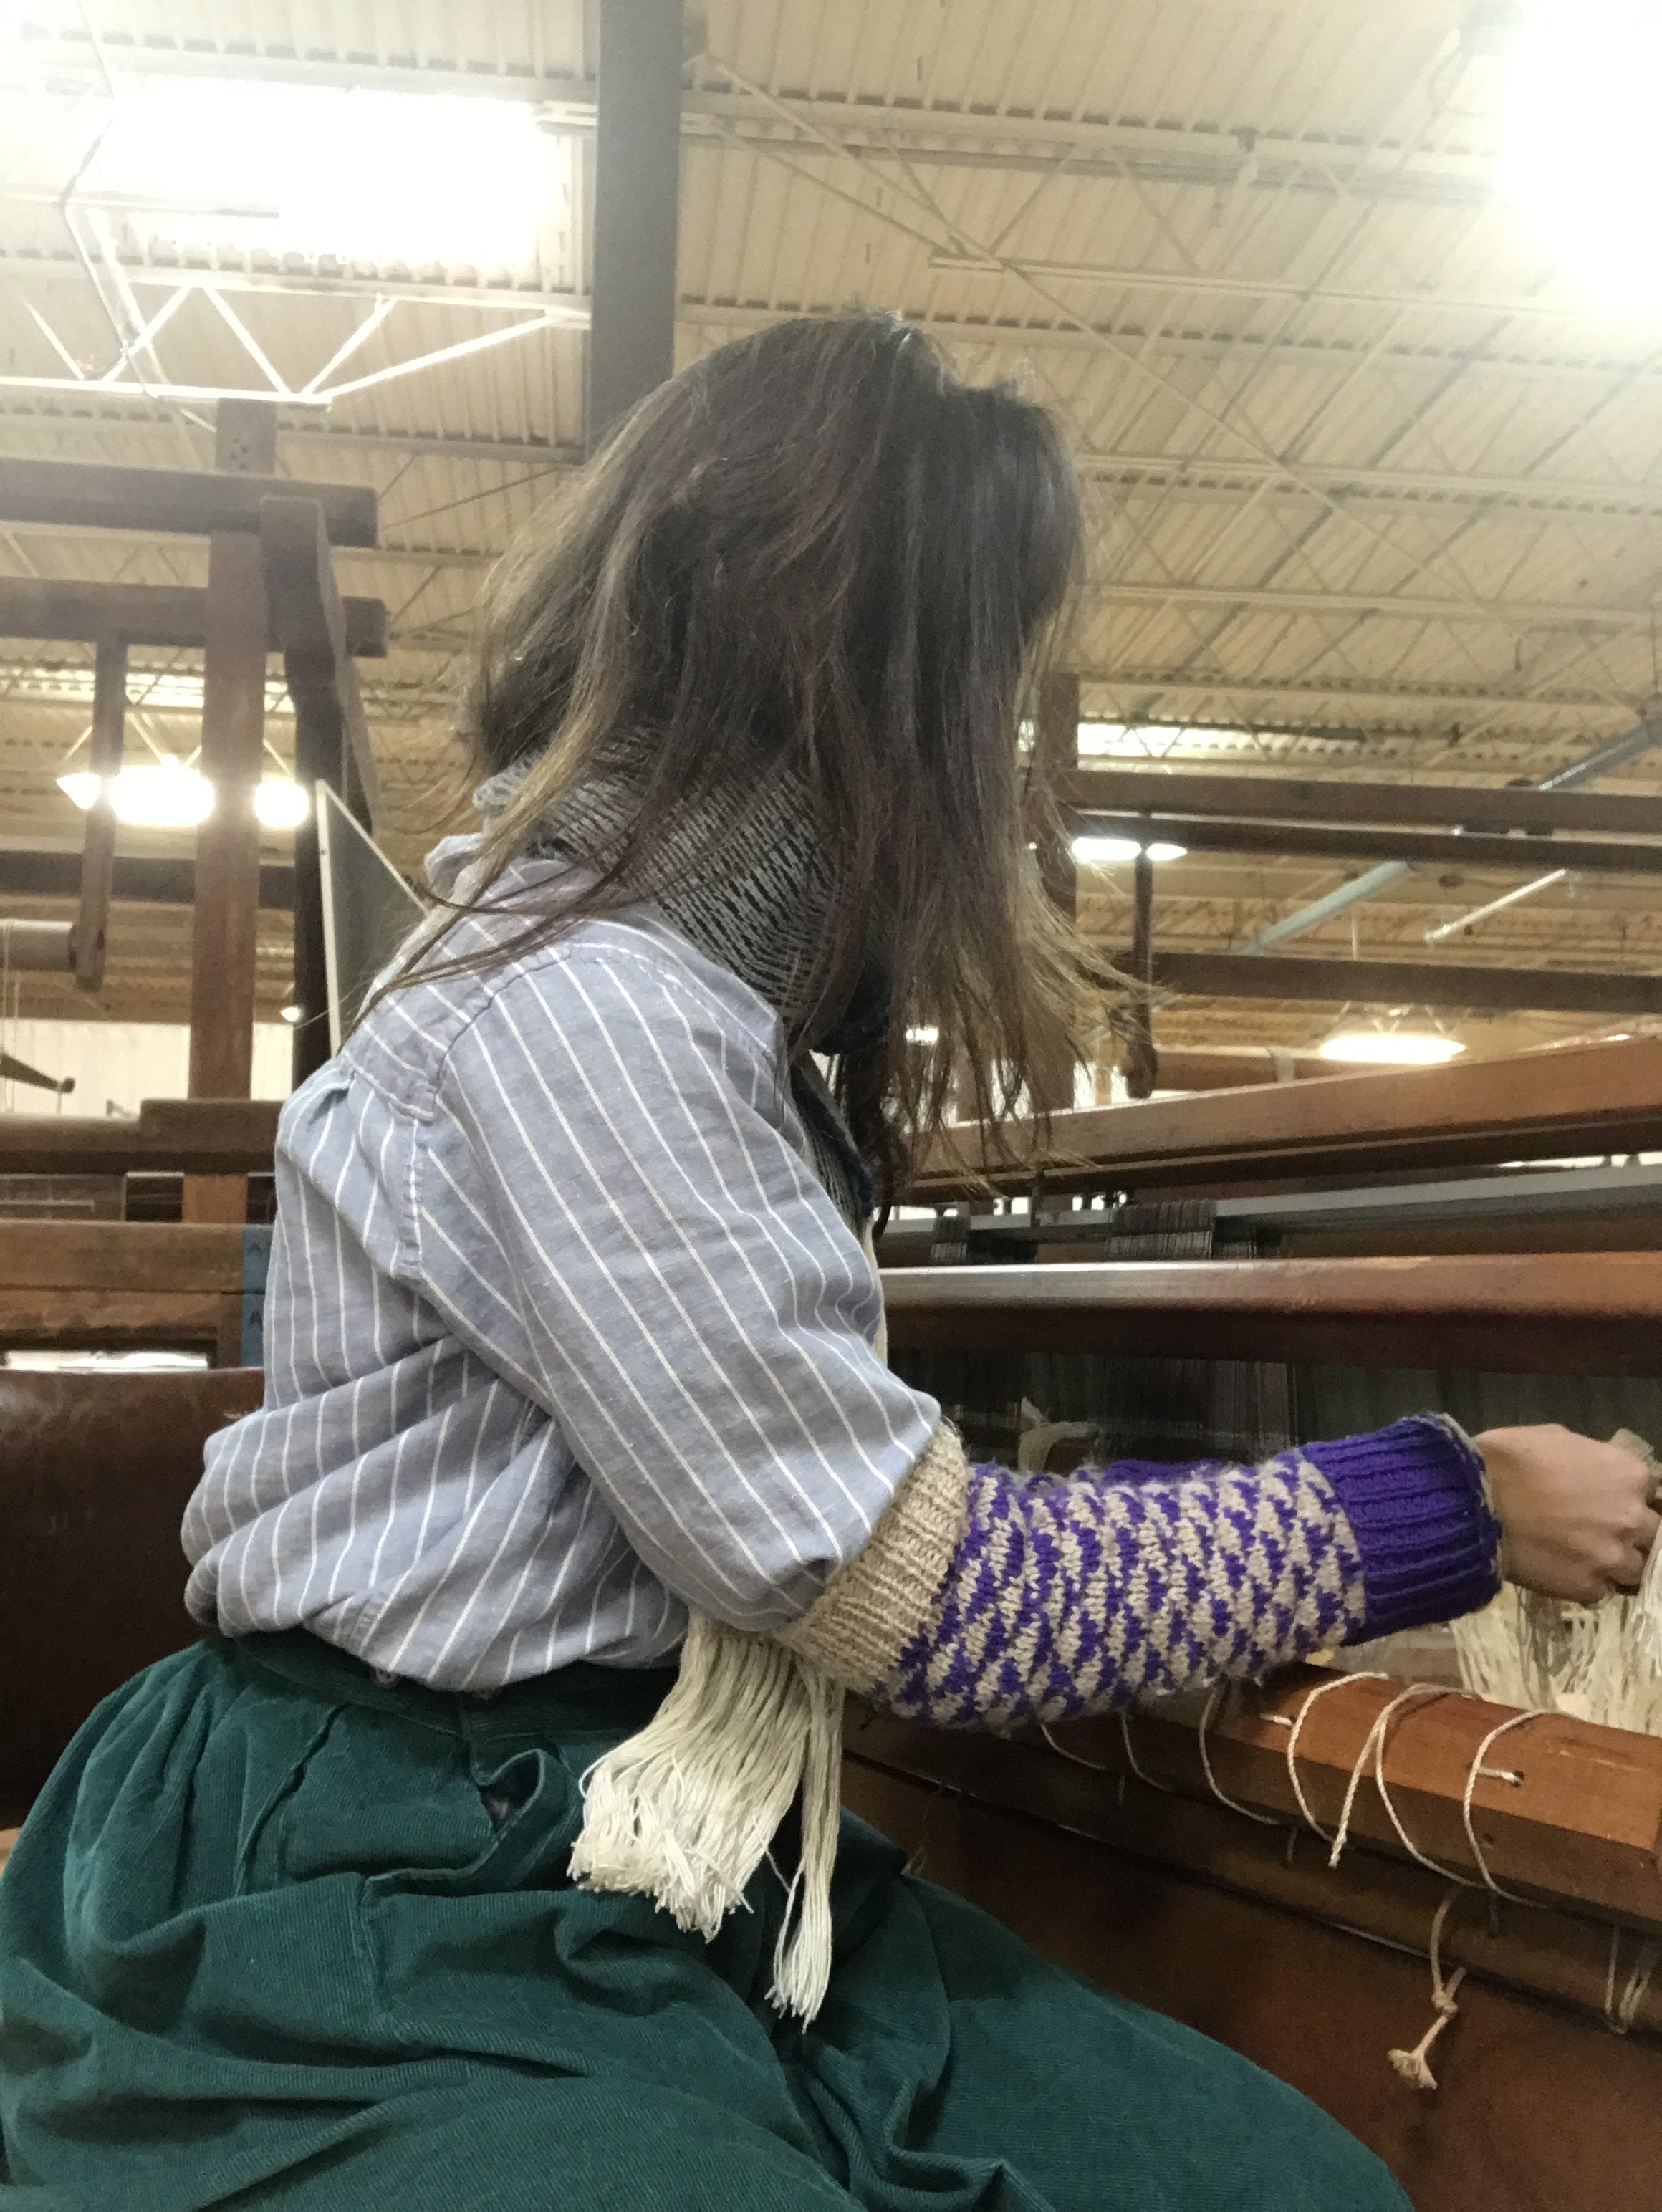 dressing the loom (and dressed from the 18th century)